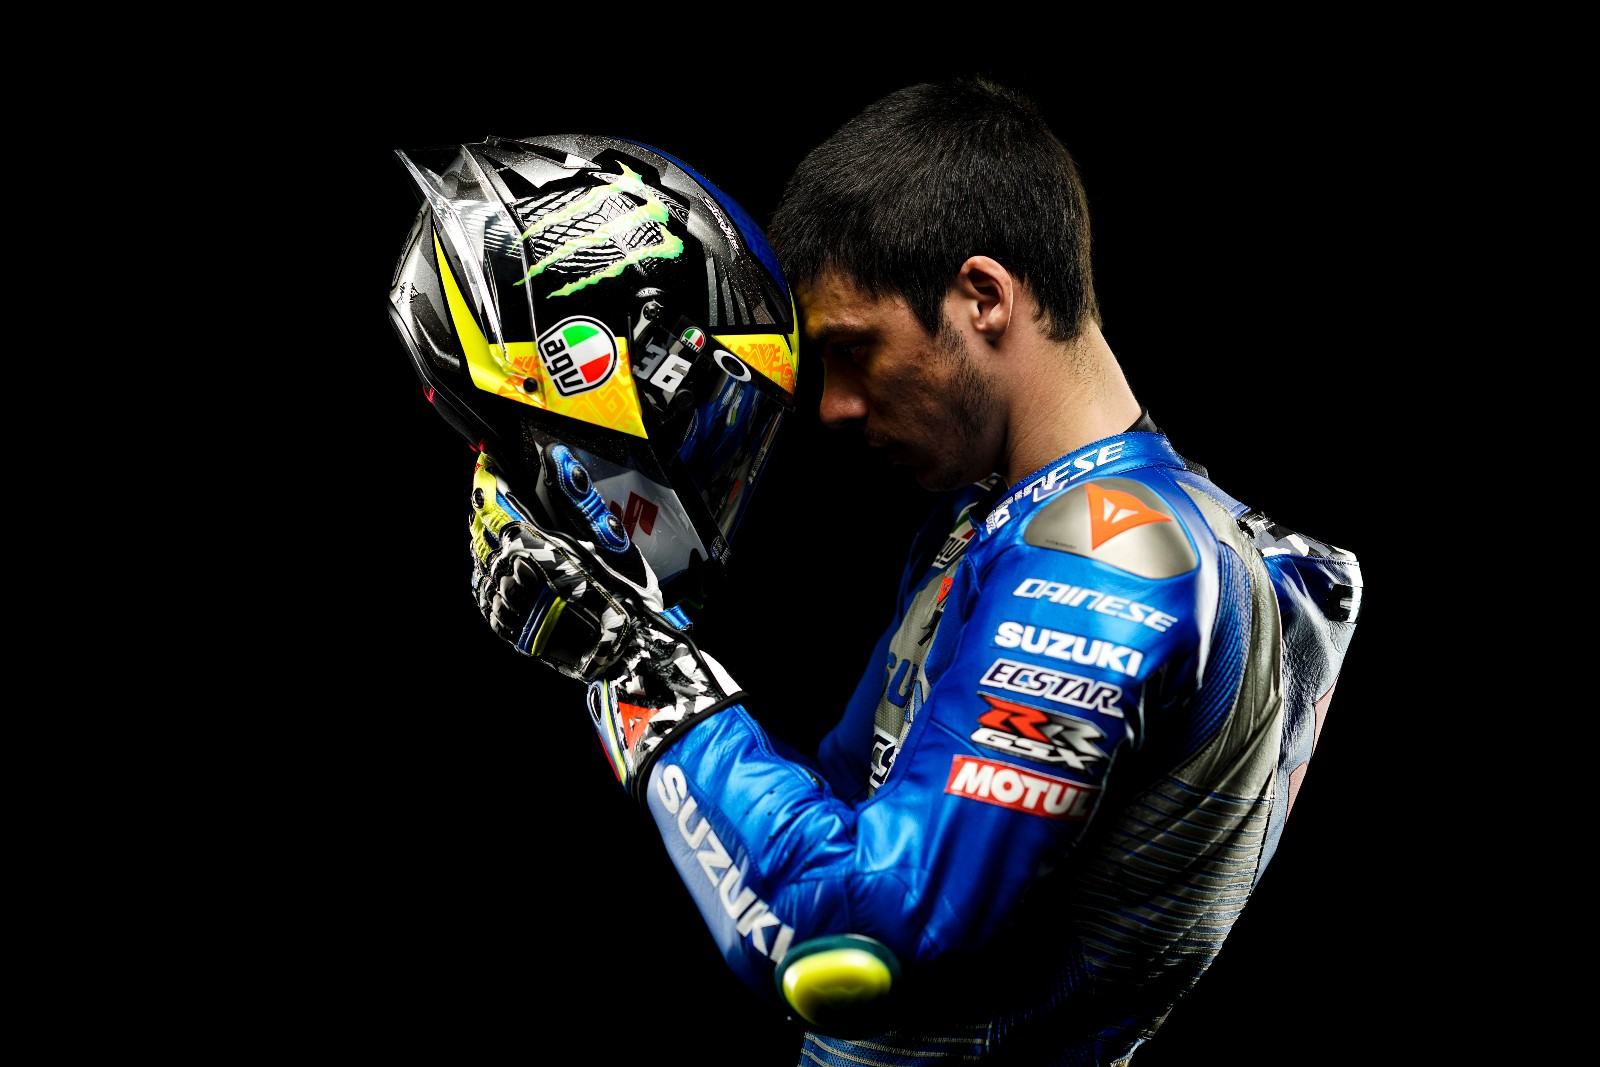 THE MAN WHO MADE HISTORY WITH SUZUKI